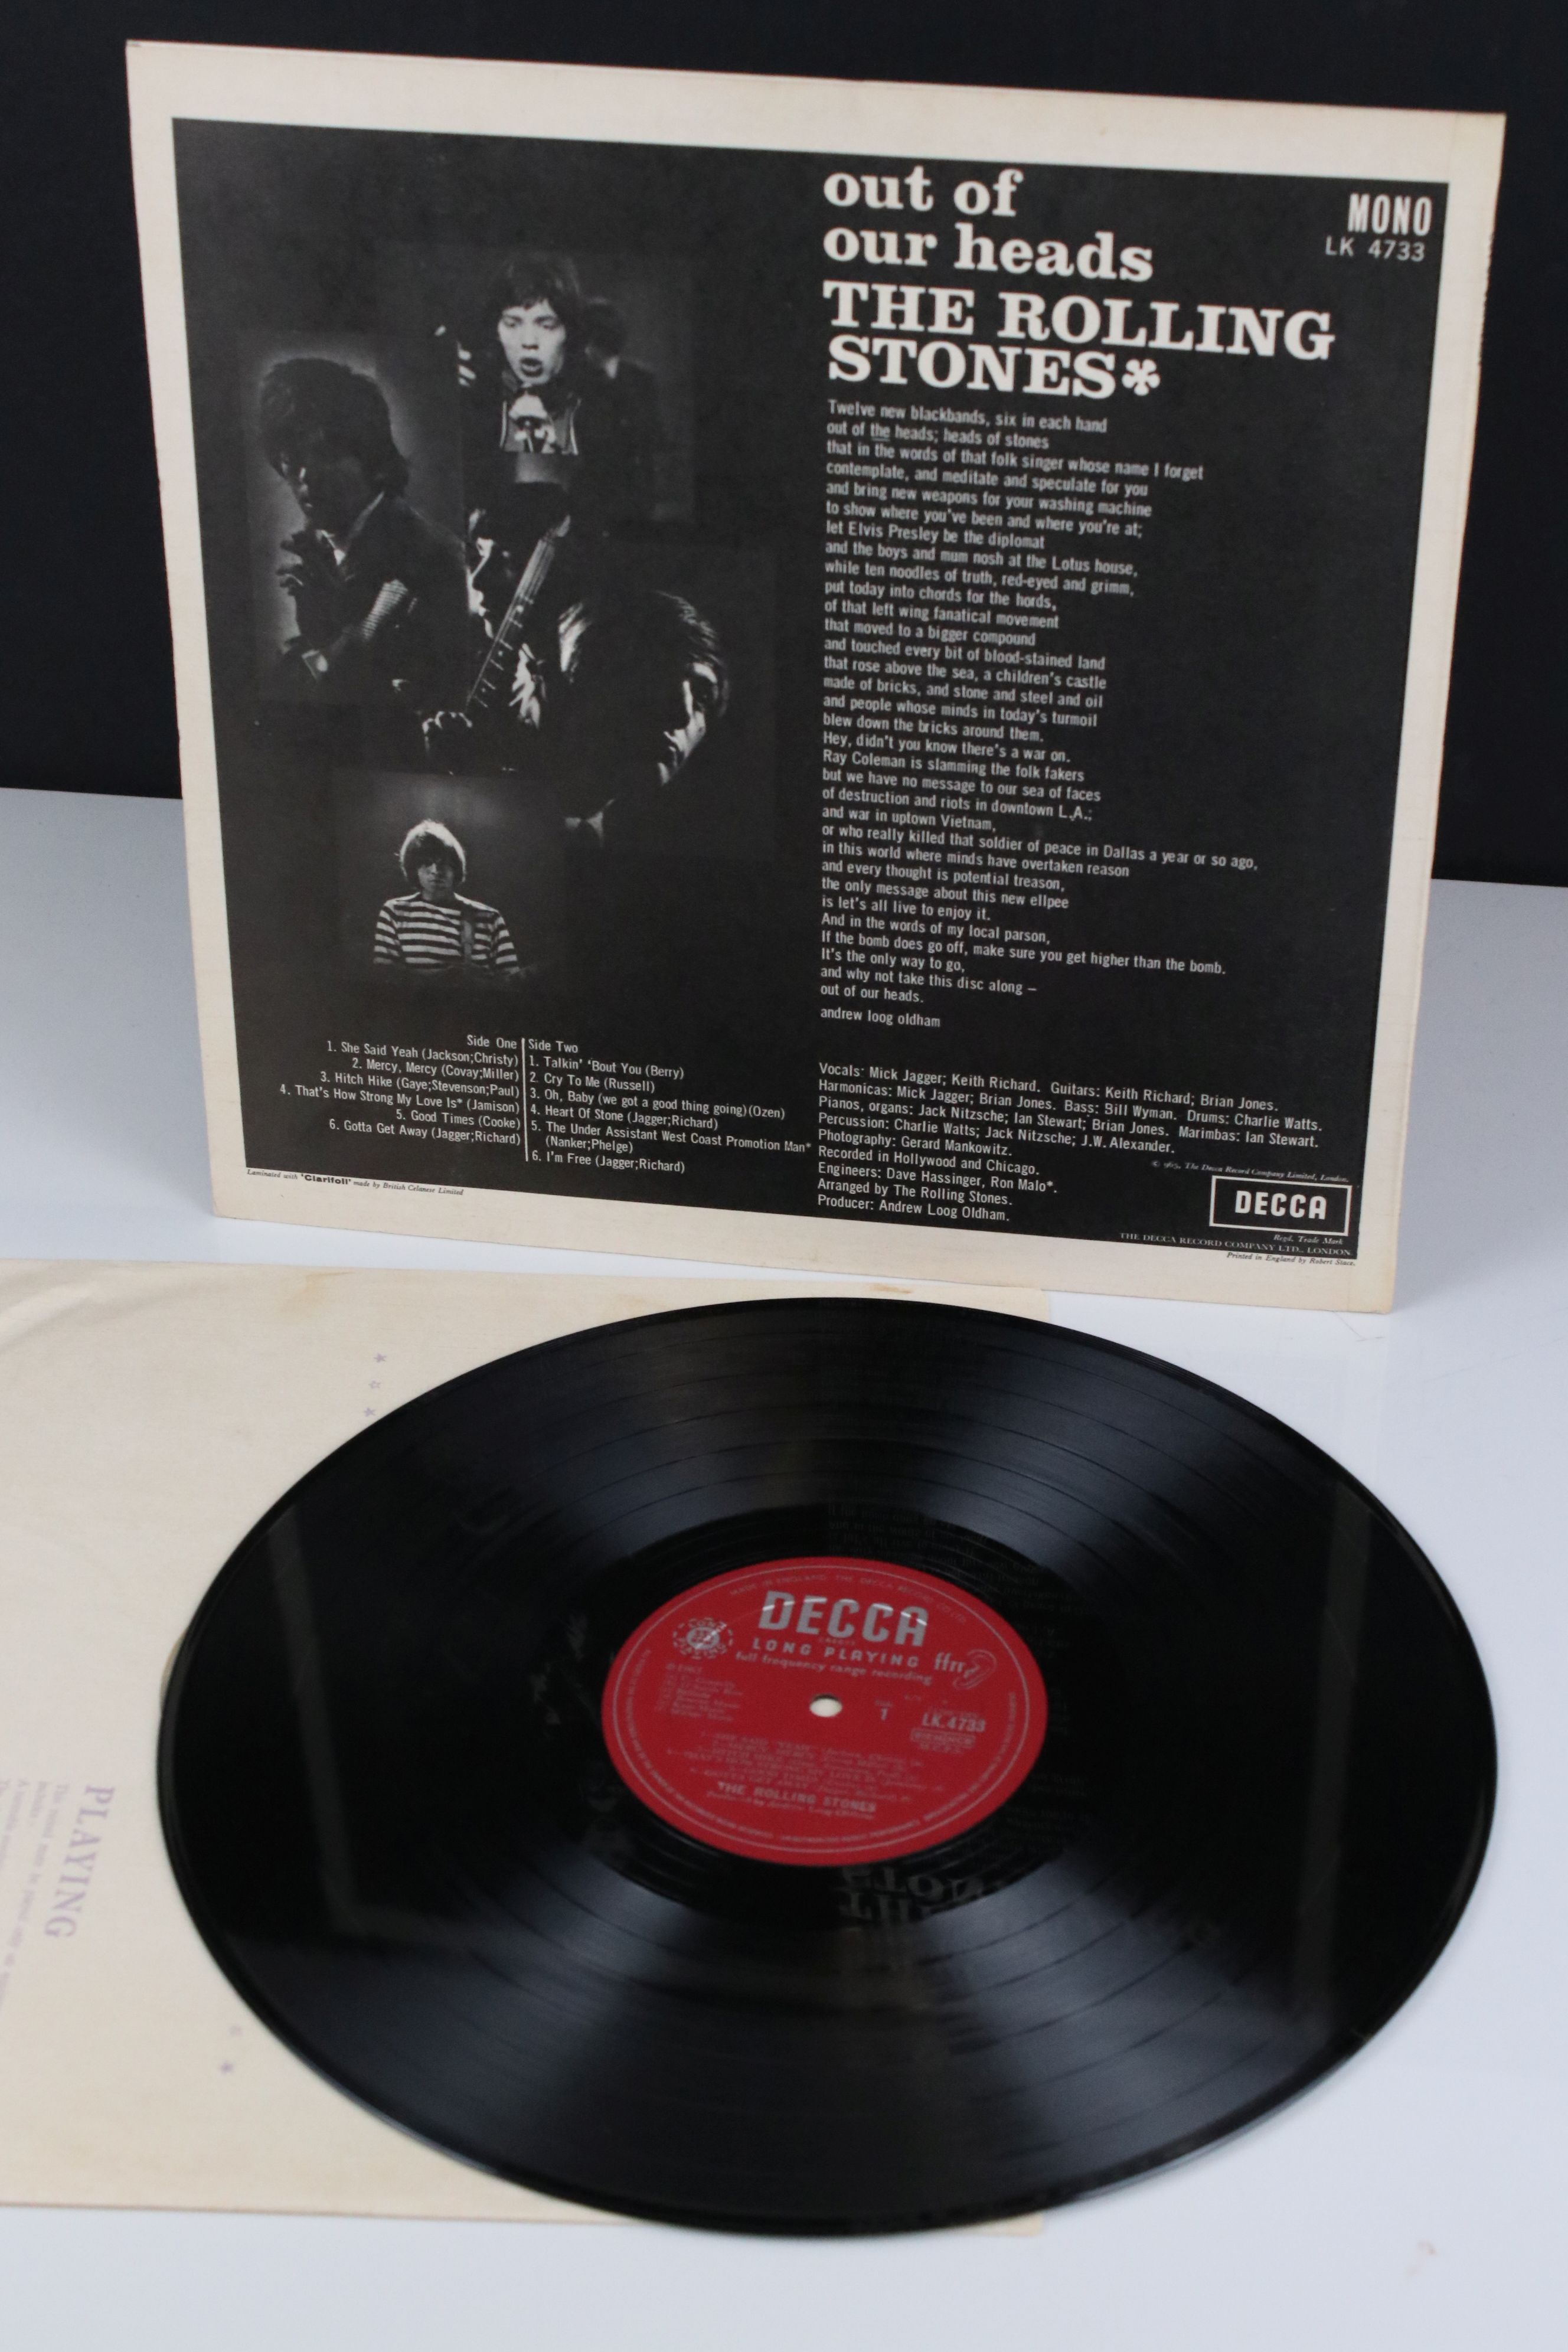 Vinyl - The Rolling Stones Out Of Our Heads (Decca LK 4733) mono, non flipback sleeve by Robert - Image 2 of 4